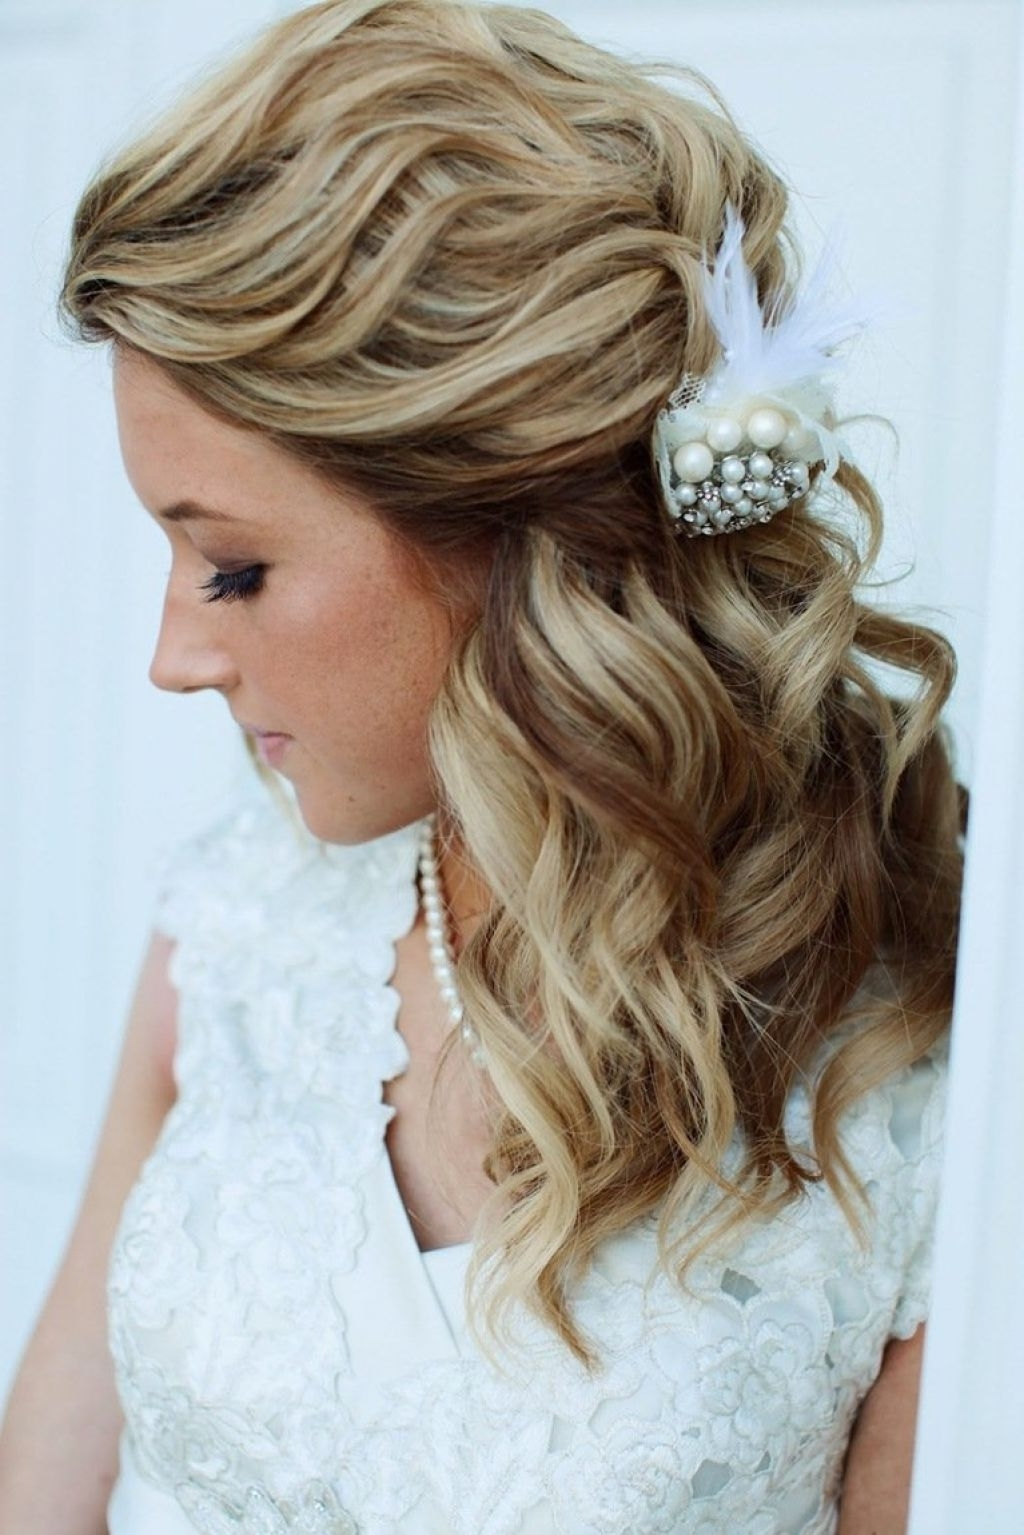 √ 24+ Awesome Wedding Hairstyles For Shoulder Length Hair: Cute With Regard To Widely Used Wedding Hairstyles For Medium Long Hair (View 1 of 15)